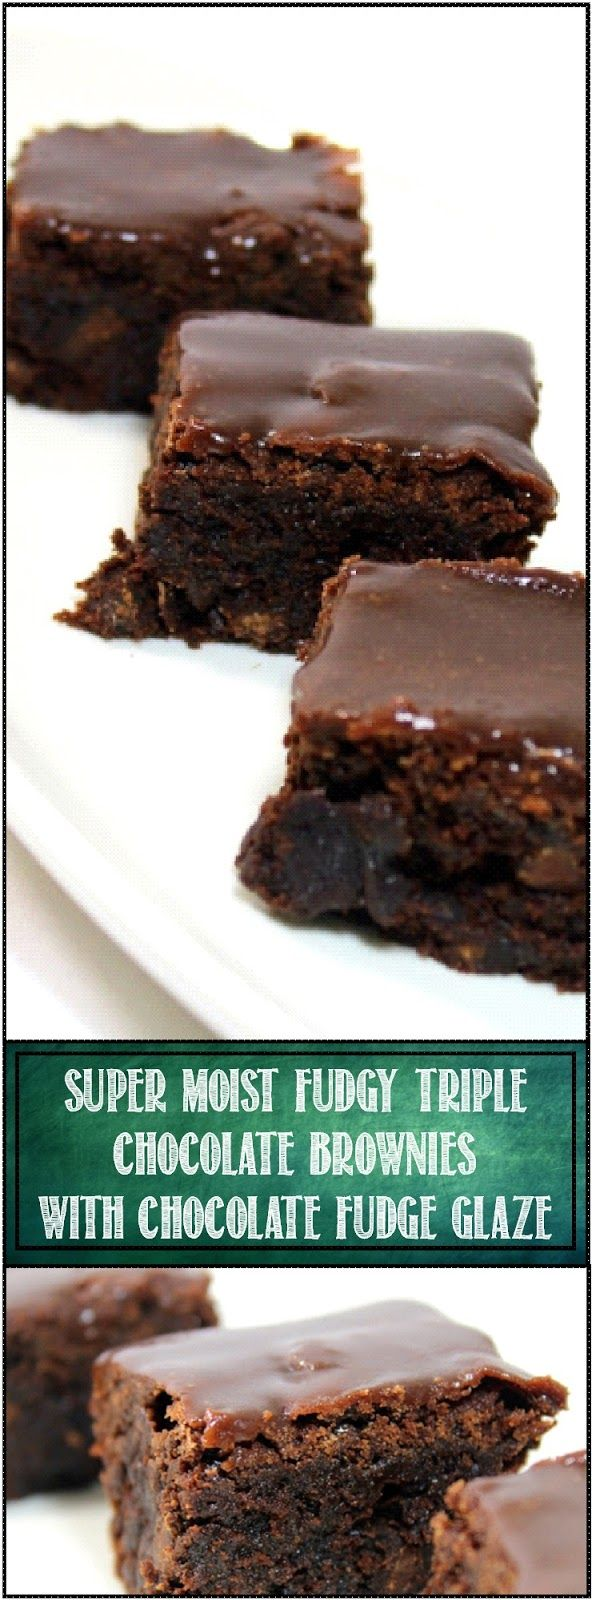 "SUPER MOIST Fudgy TRIPLE Chocolate Brownies with Chocolate Fudge Glaze - Church PotLuck Dessert... Like the title says, THREE Types of chocolate, Chocolate chips are loaded into a moist Fudgy cake brownie and then the whole thing gets covered in a fudge chocolate glaze. This indulgent dessert is sure to be praise worthy for any gathering of family and friends... A GOTO ""got to take something"" DISH!"